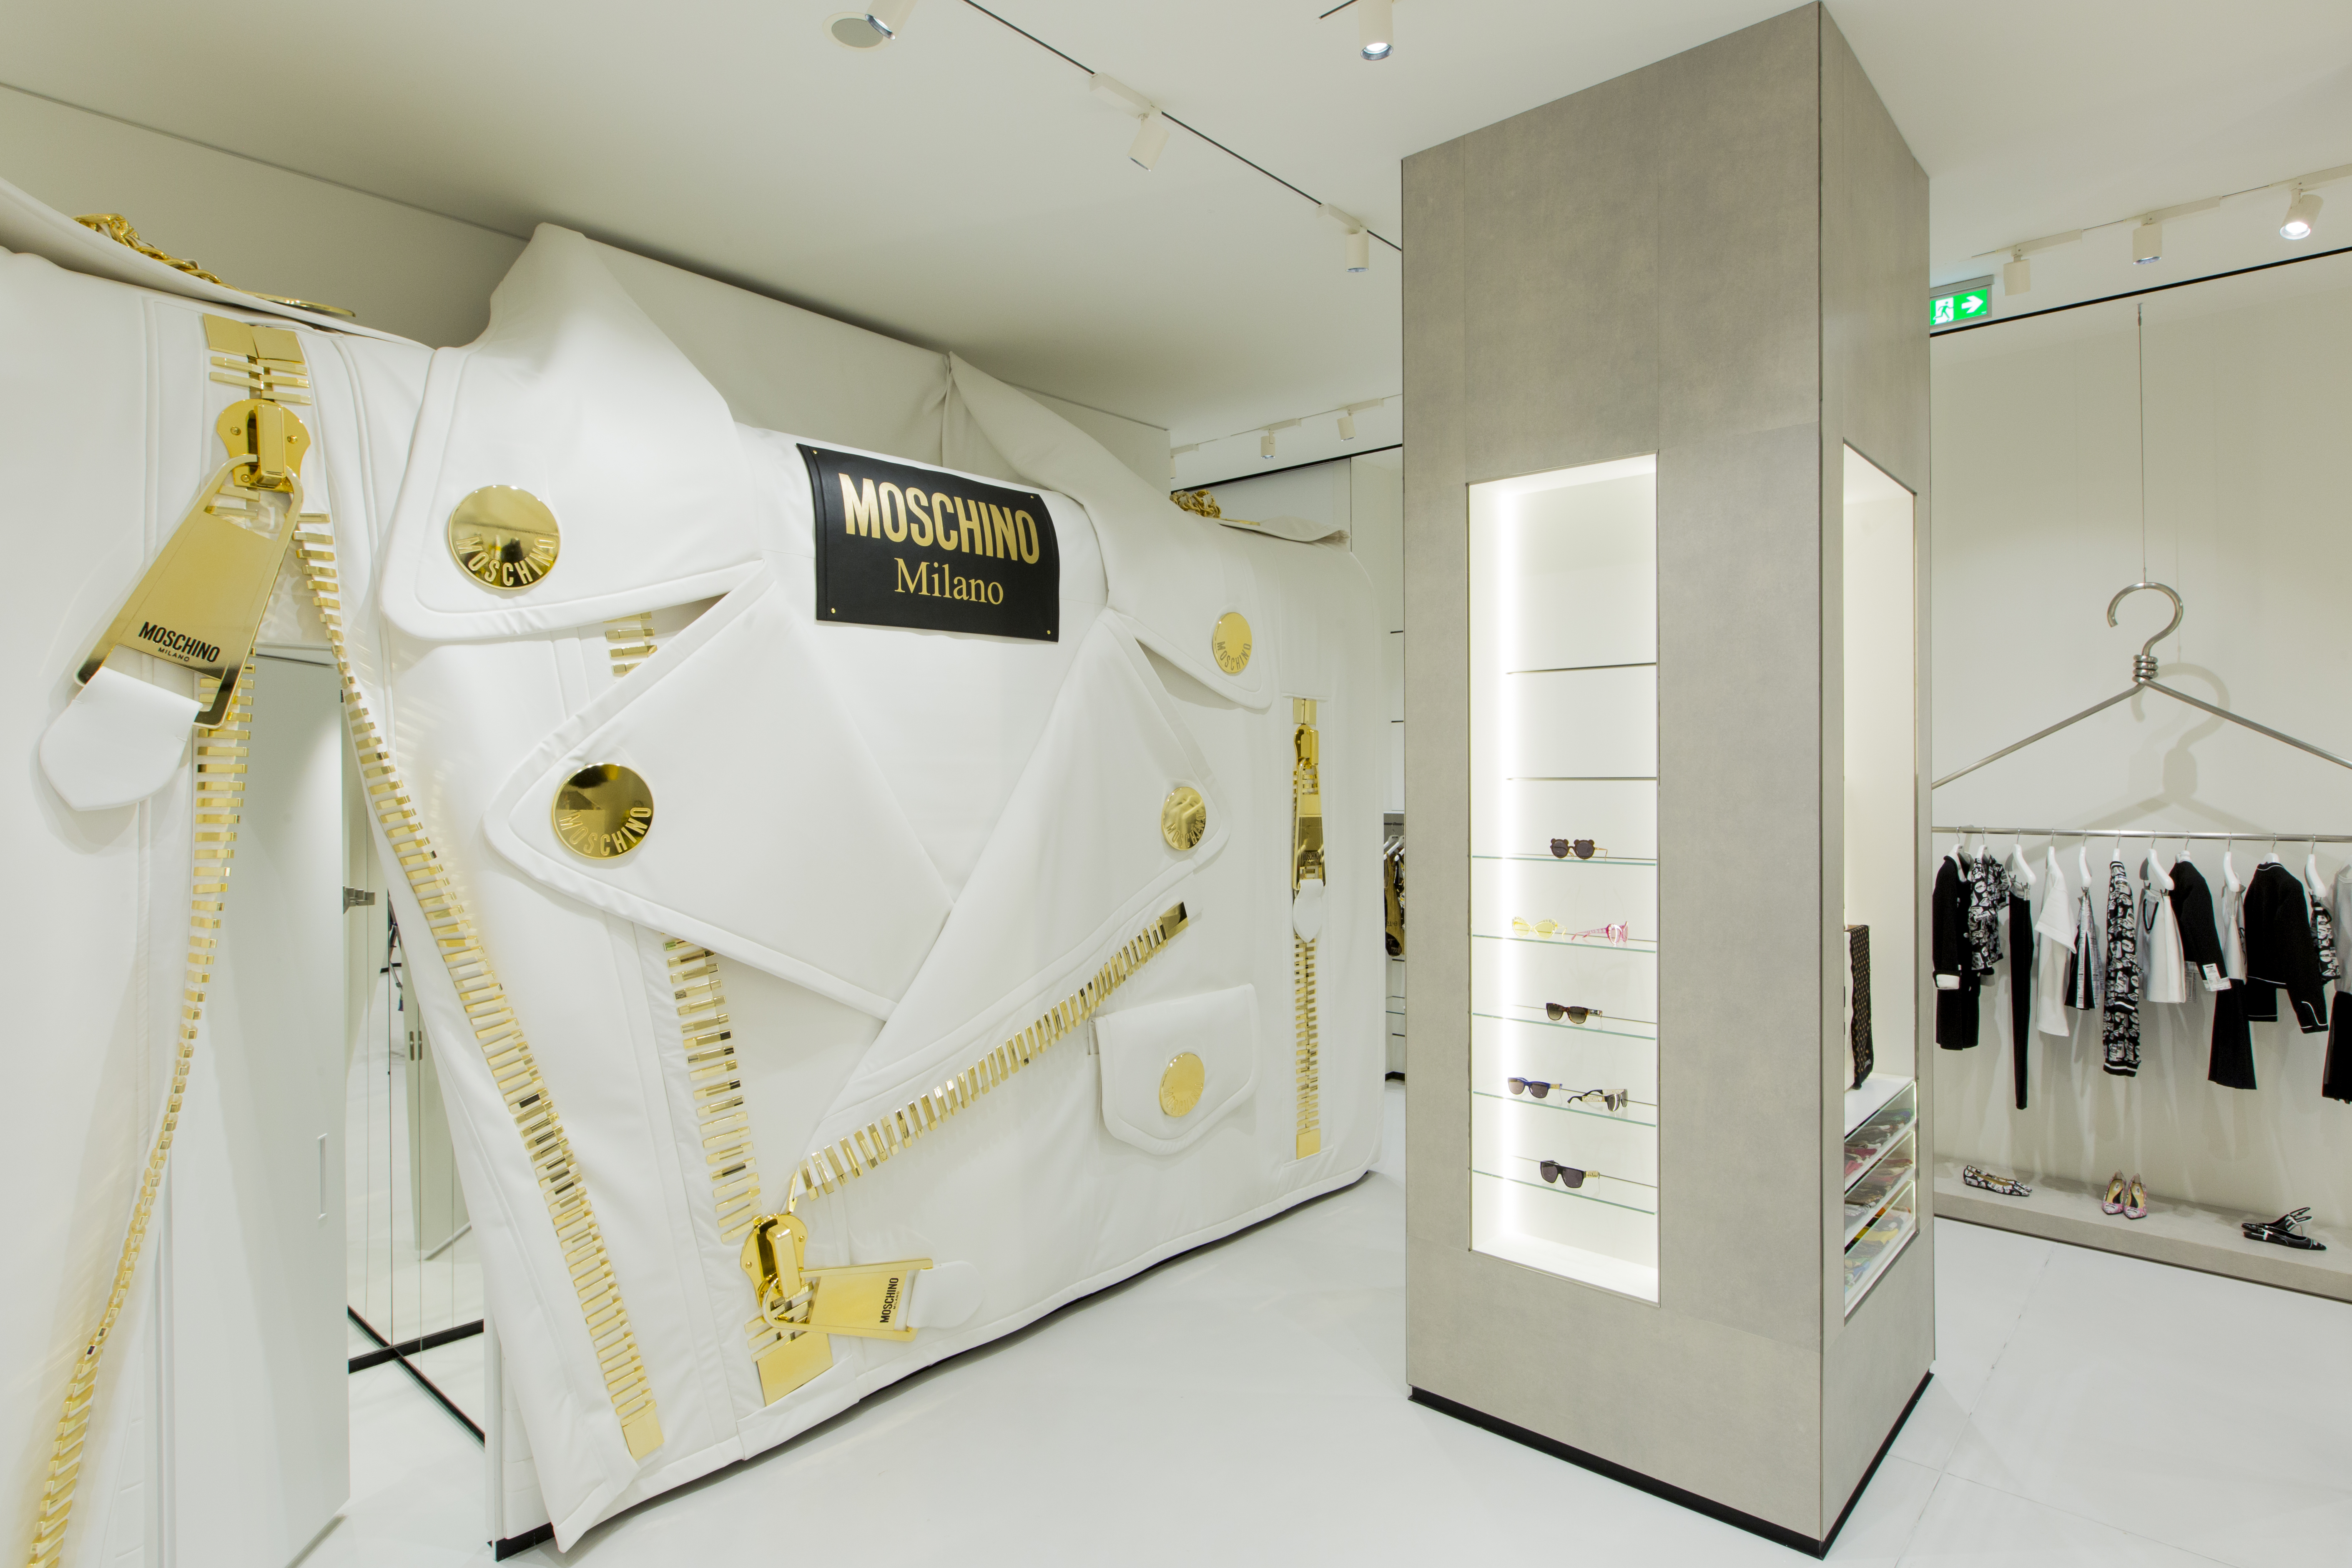 Moschino's new flagship store in Milan.